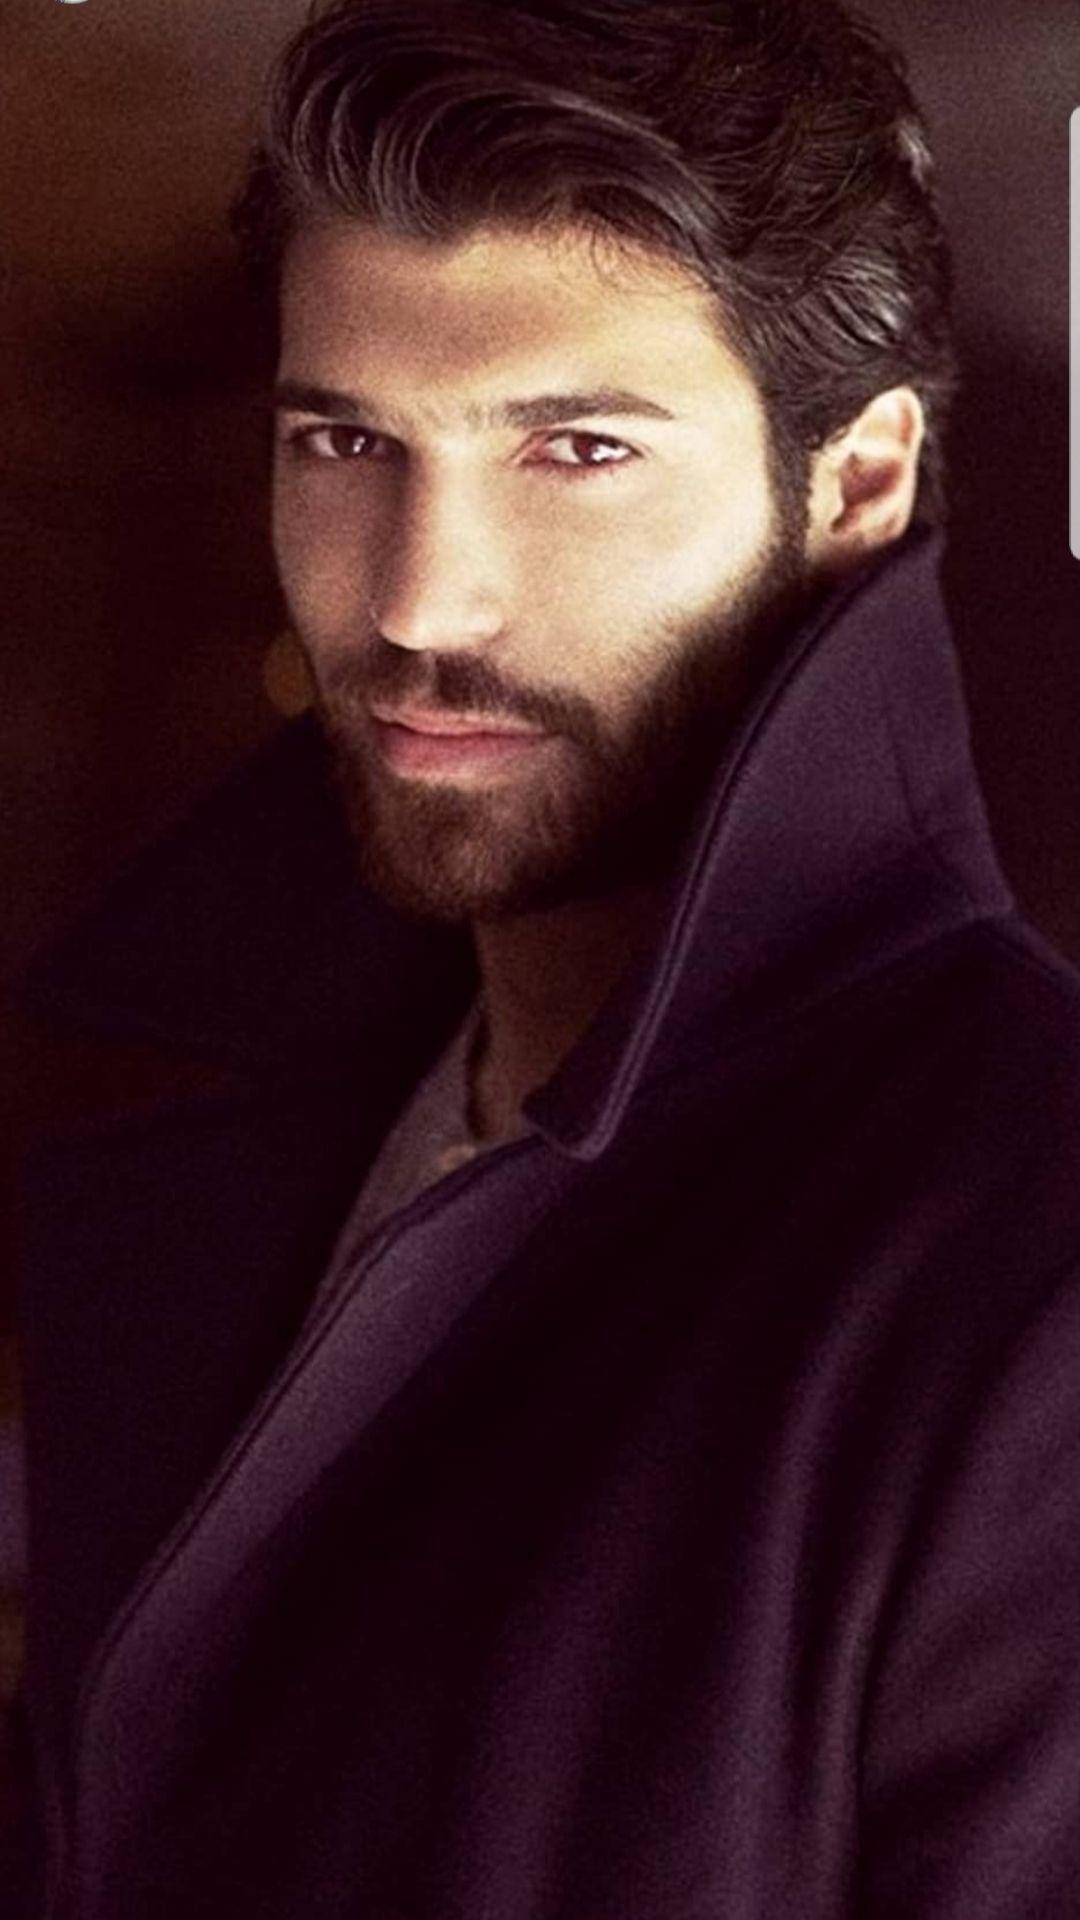 Cehenot uploaded by cehenot on oct 6, 2020. Can Yaman Hd Wallpaper : Can Yaman Forever Photos Facebook